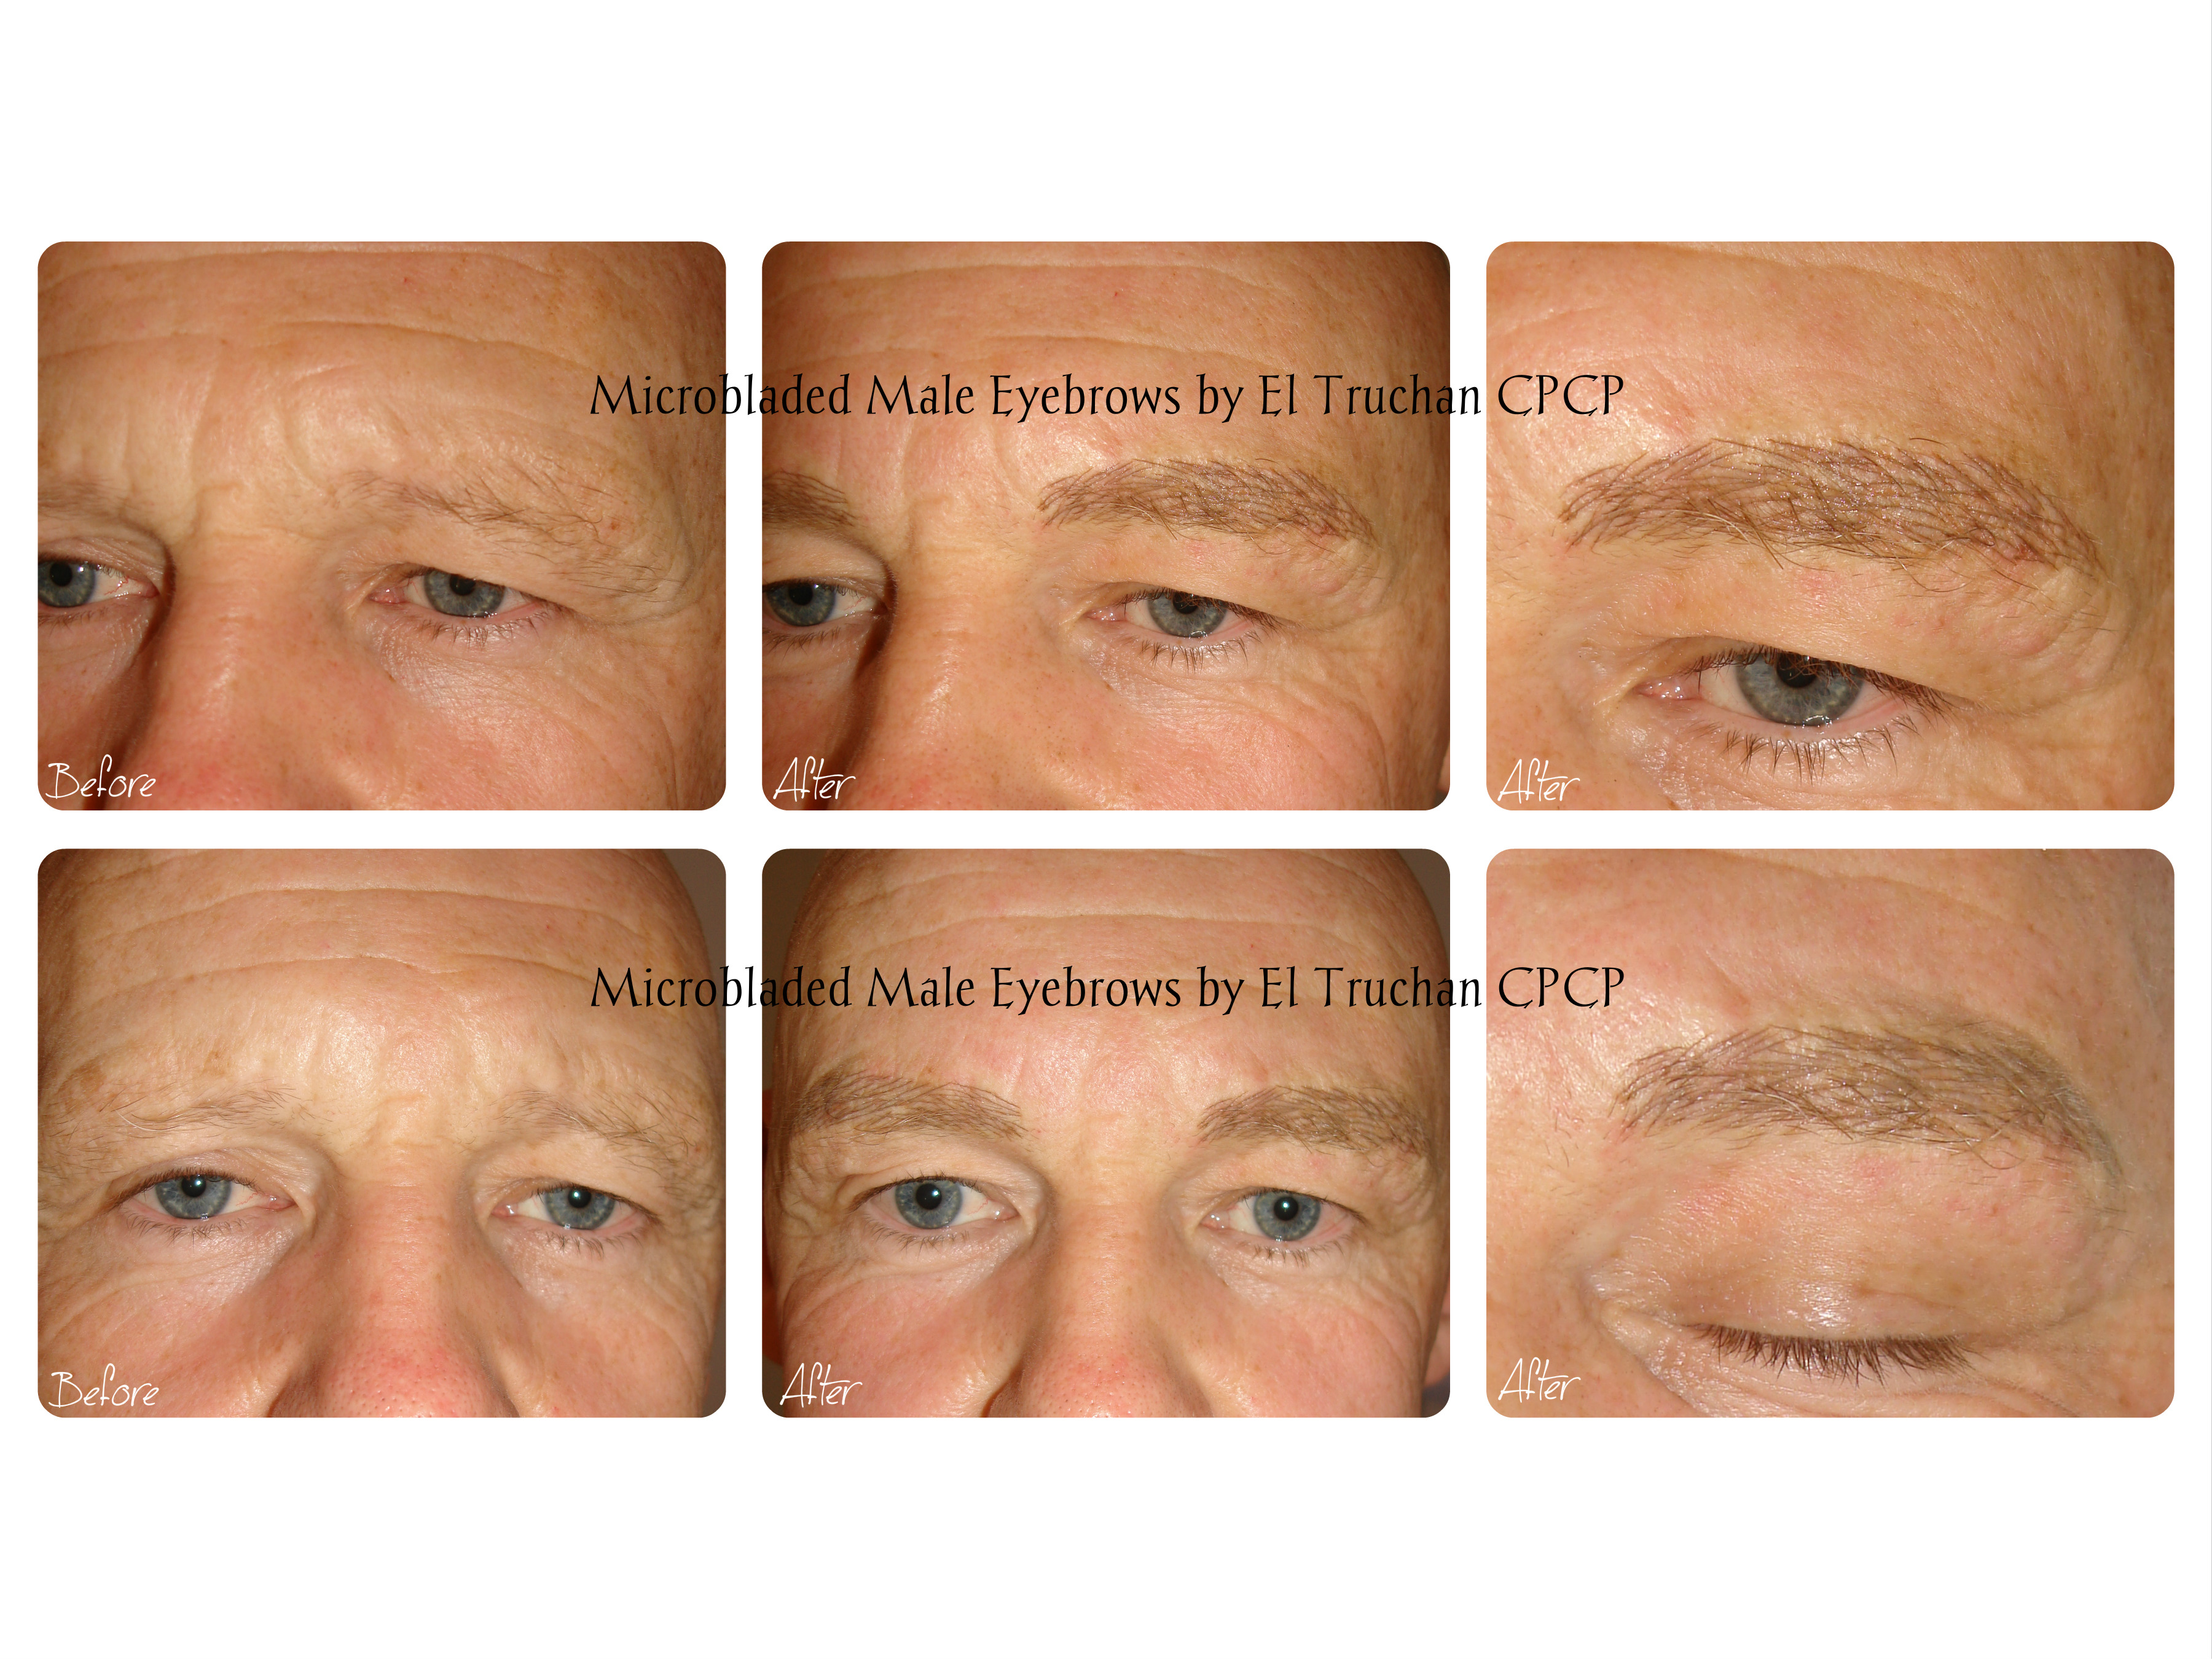 Male Eyebrows Microbladed by El Truchan